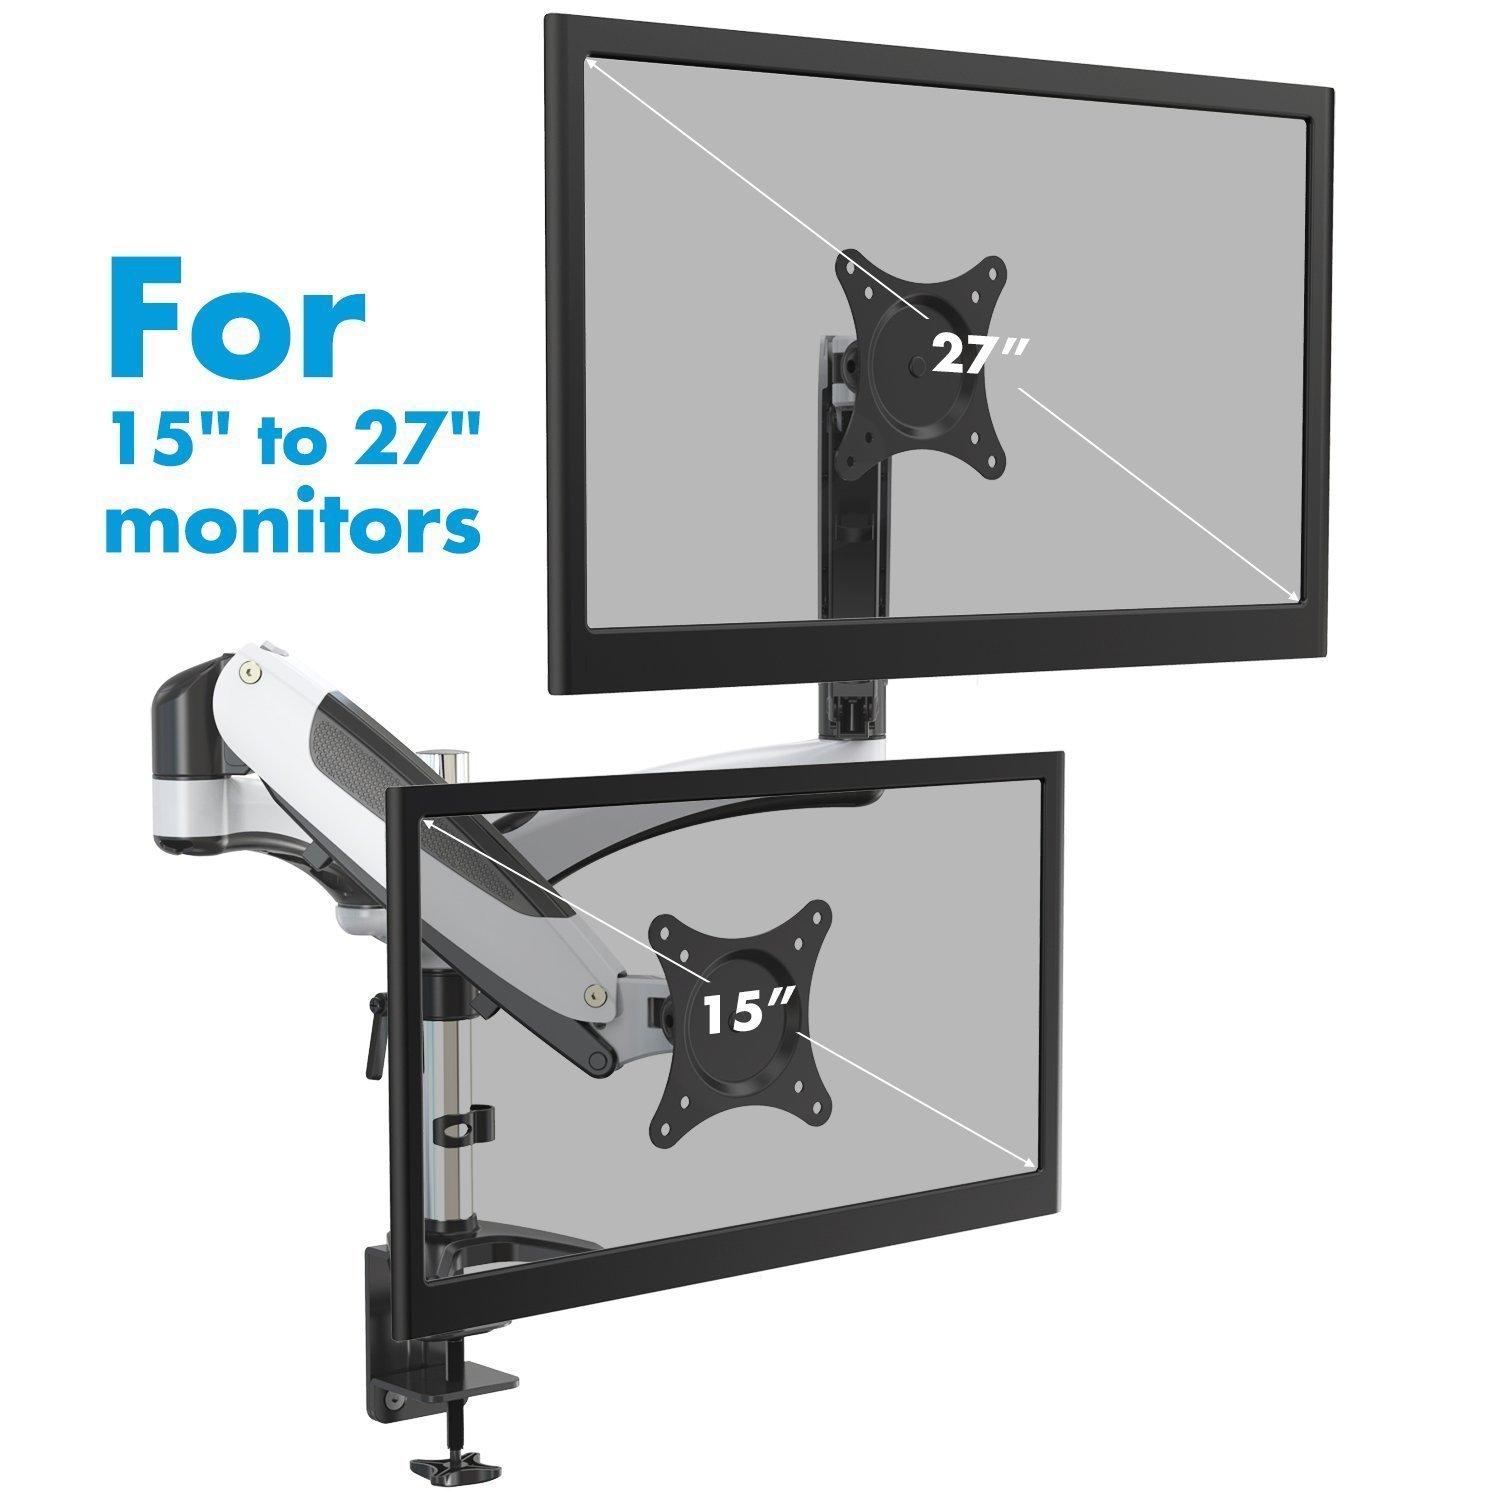 Dual Monitor Mount Perlegear, Free Standing Two Arm Monitor Stand for 13 to 32 inch LCD/LED/TFT Screens VESA 75 to 100mm Height Adjustable Swivel and Tilt, Each Arm Holds 8KG PGCM1-E